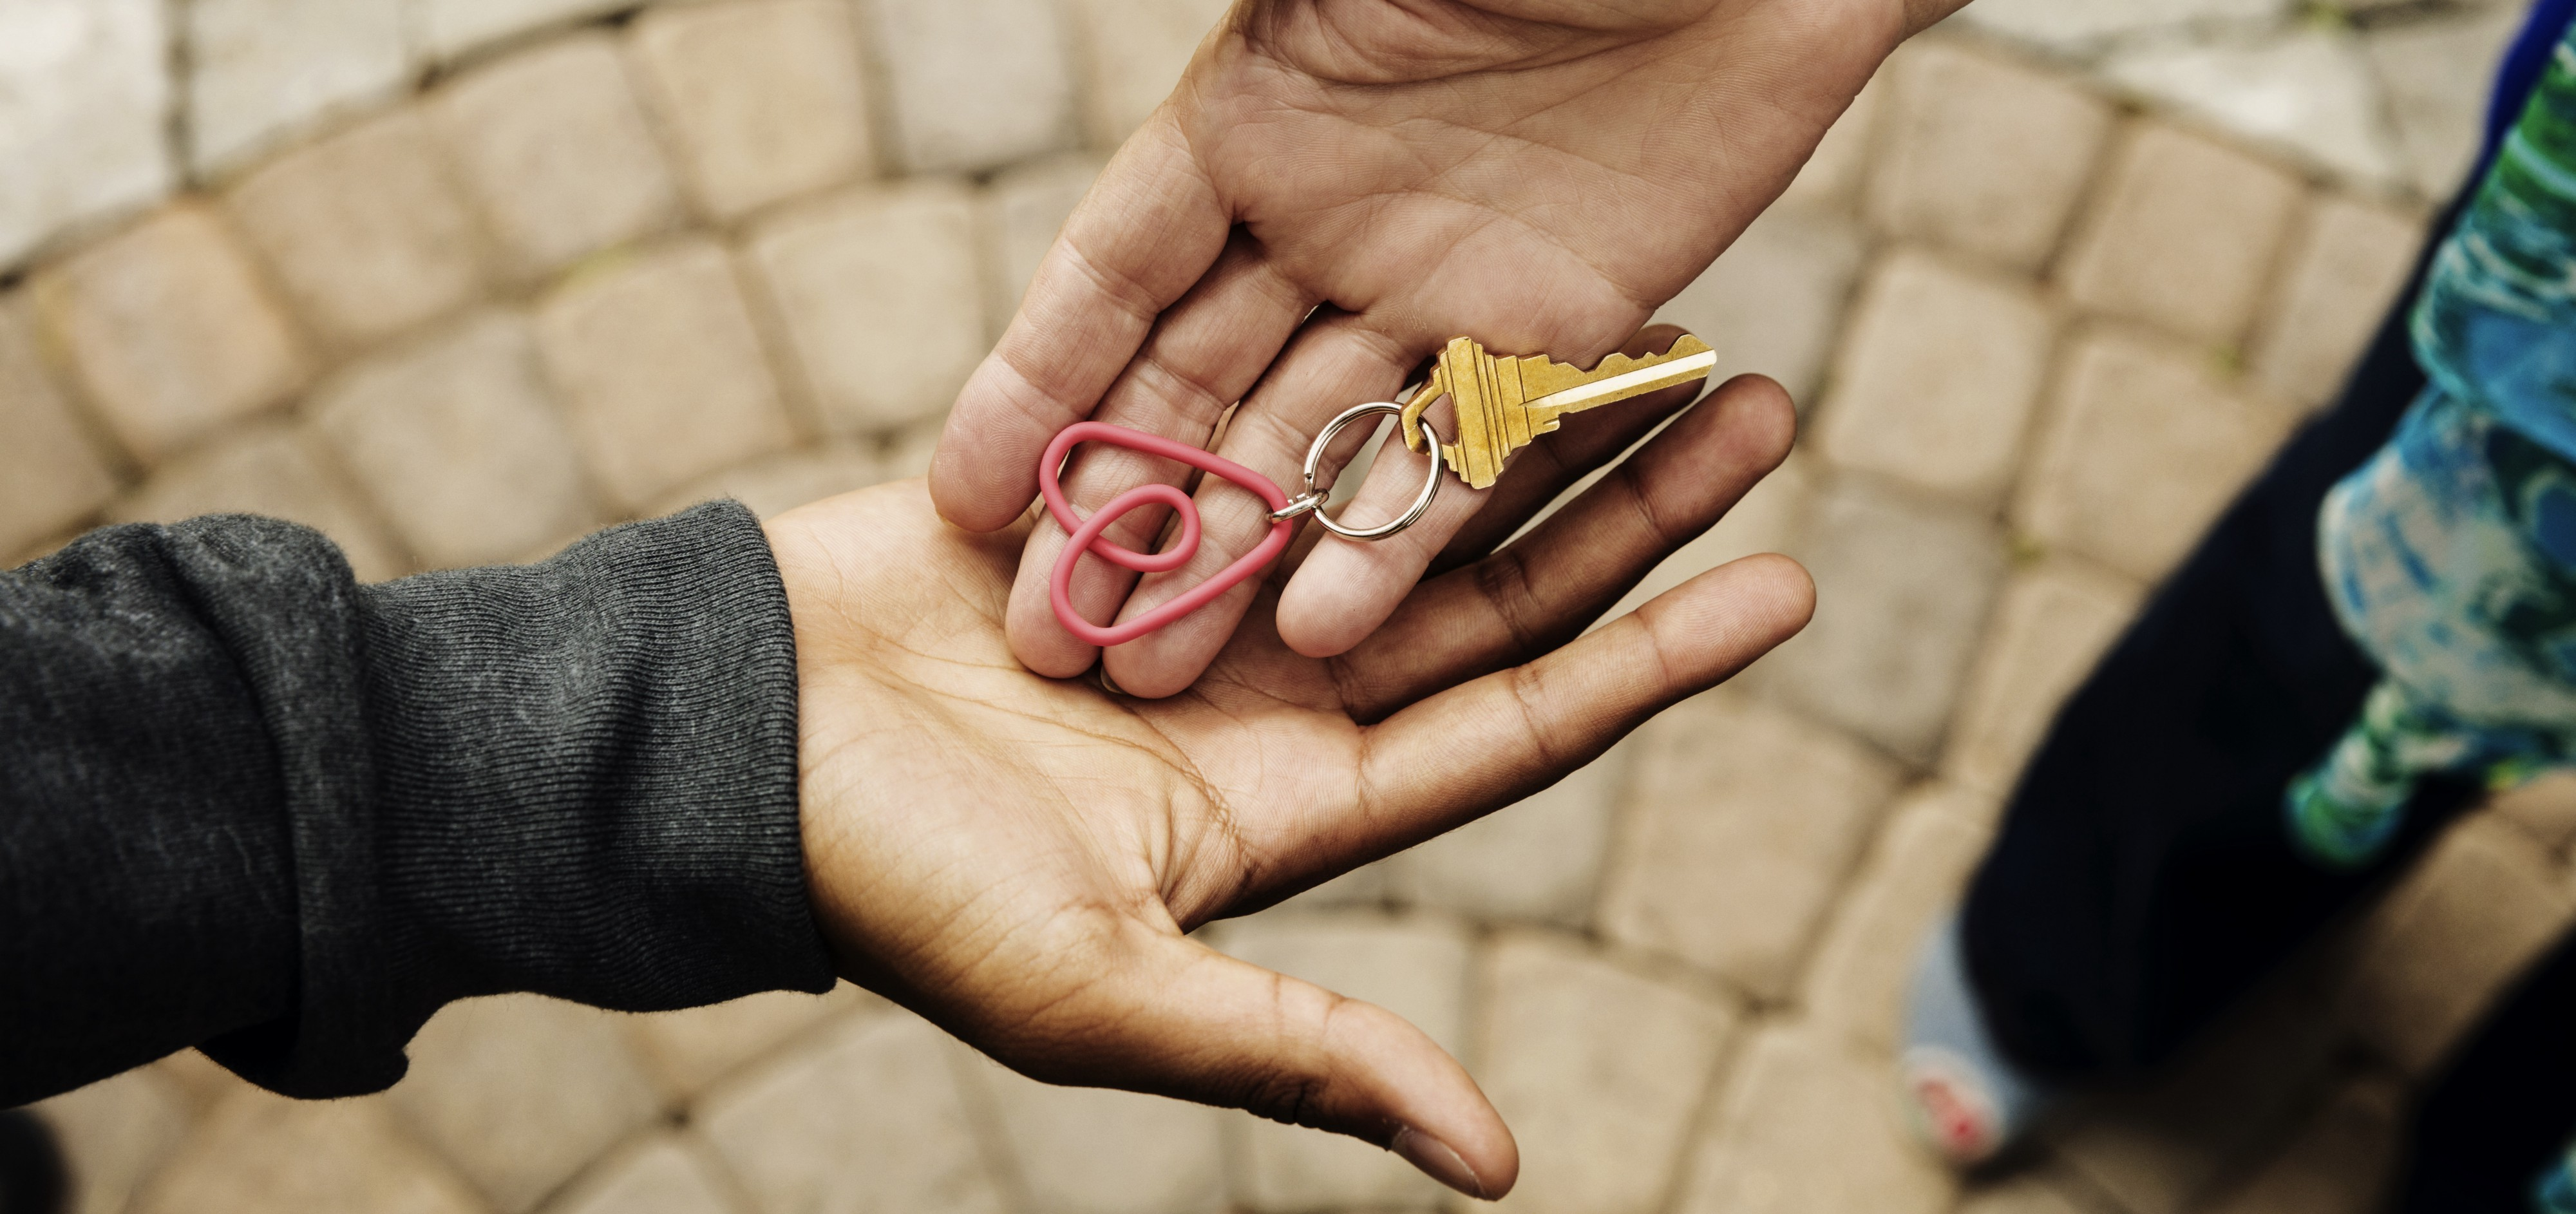 Perfect Strangers: How Airbnb is Building Trust Between